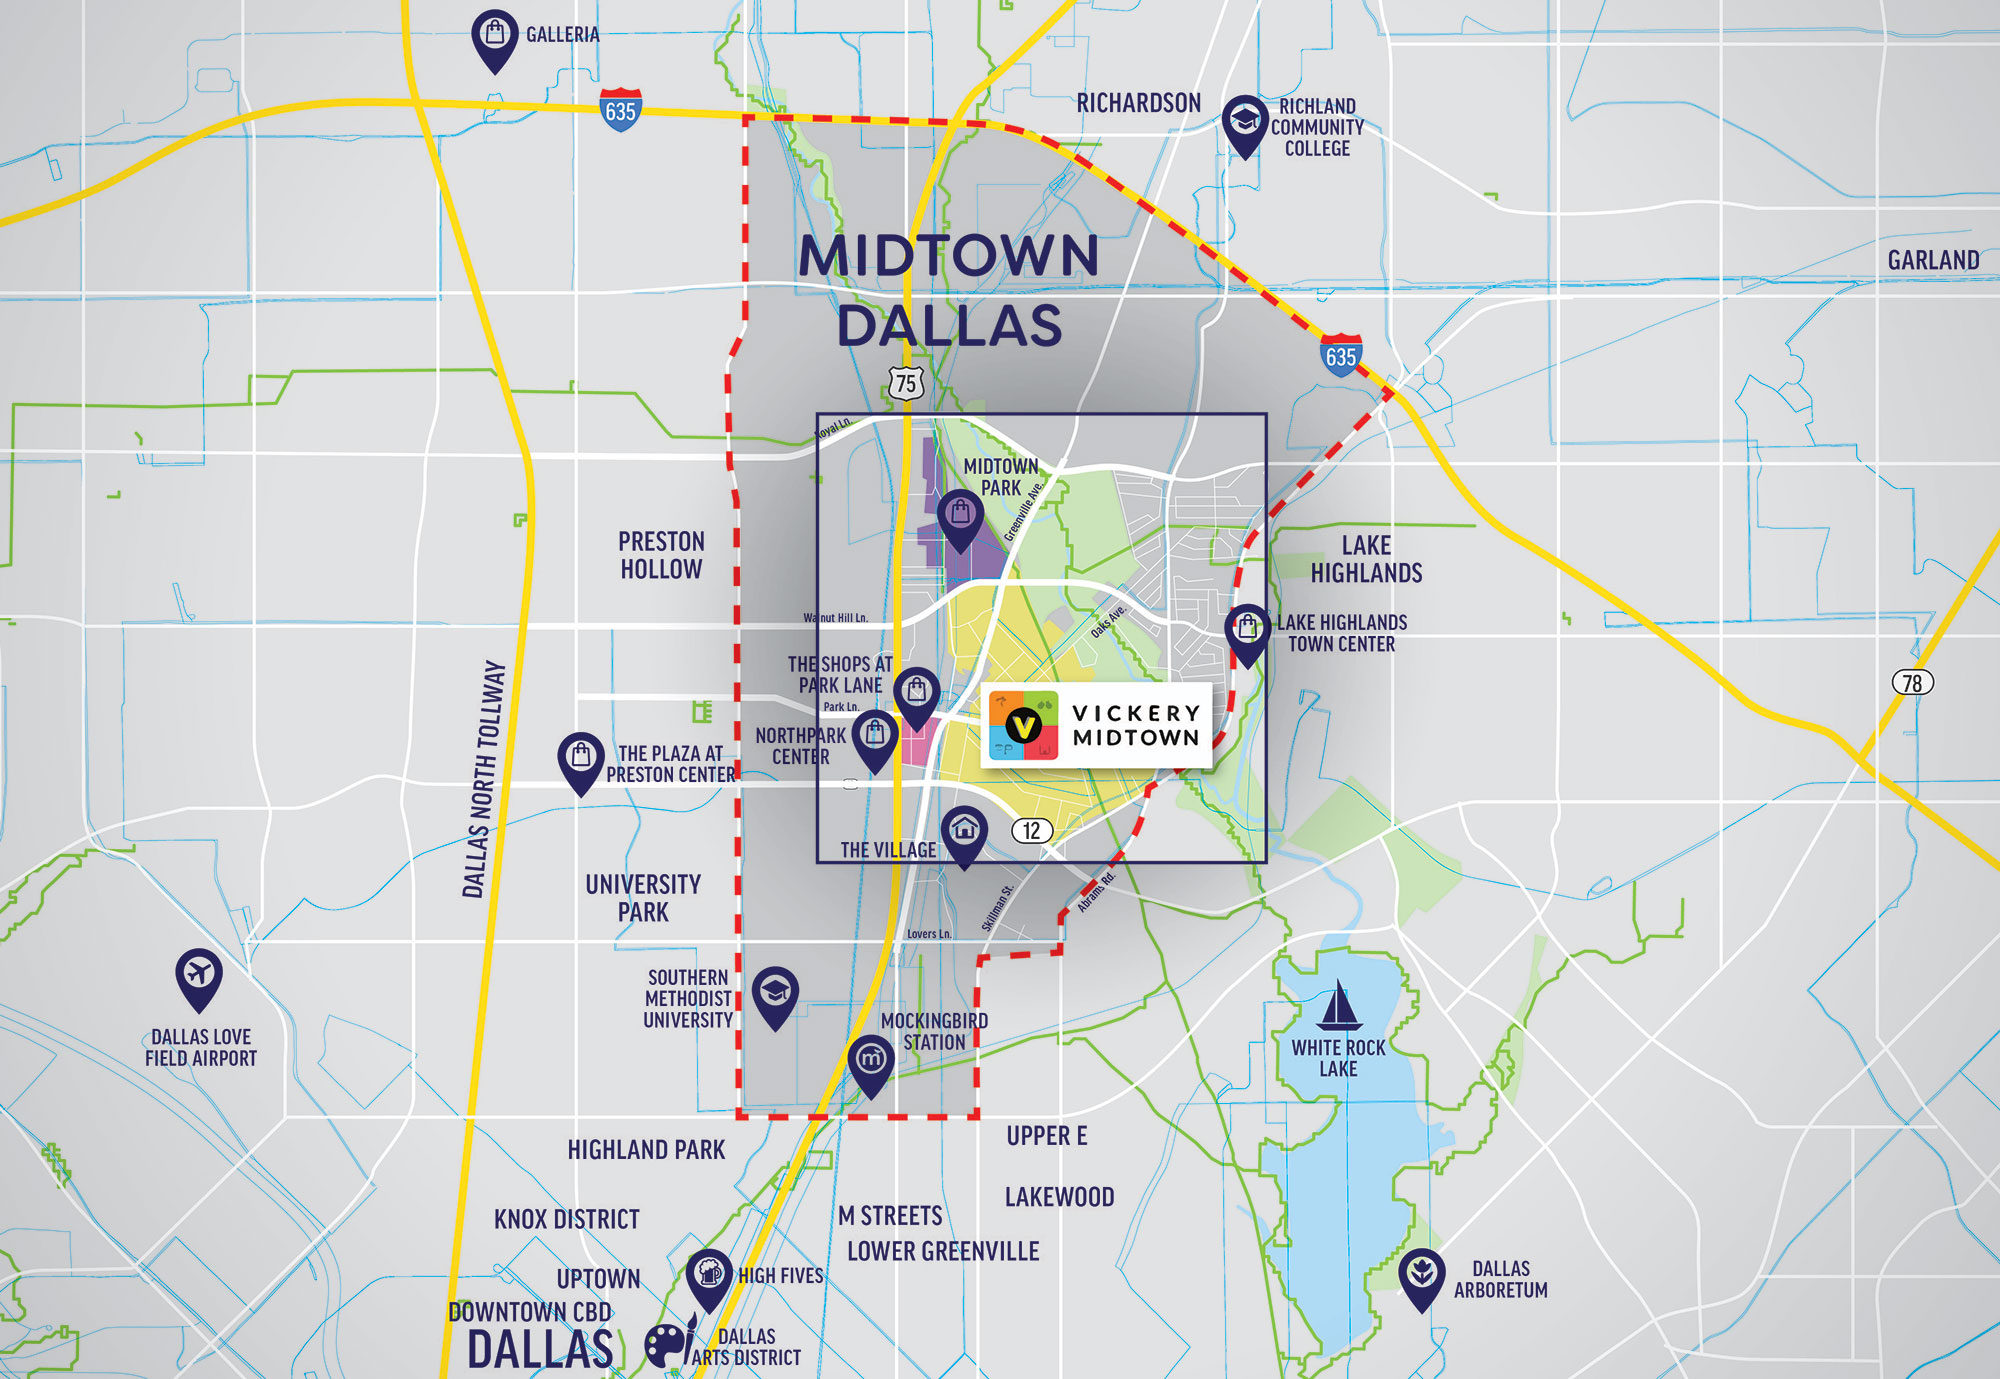 Dallas Midtown Map